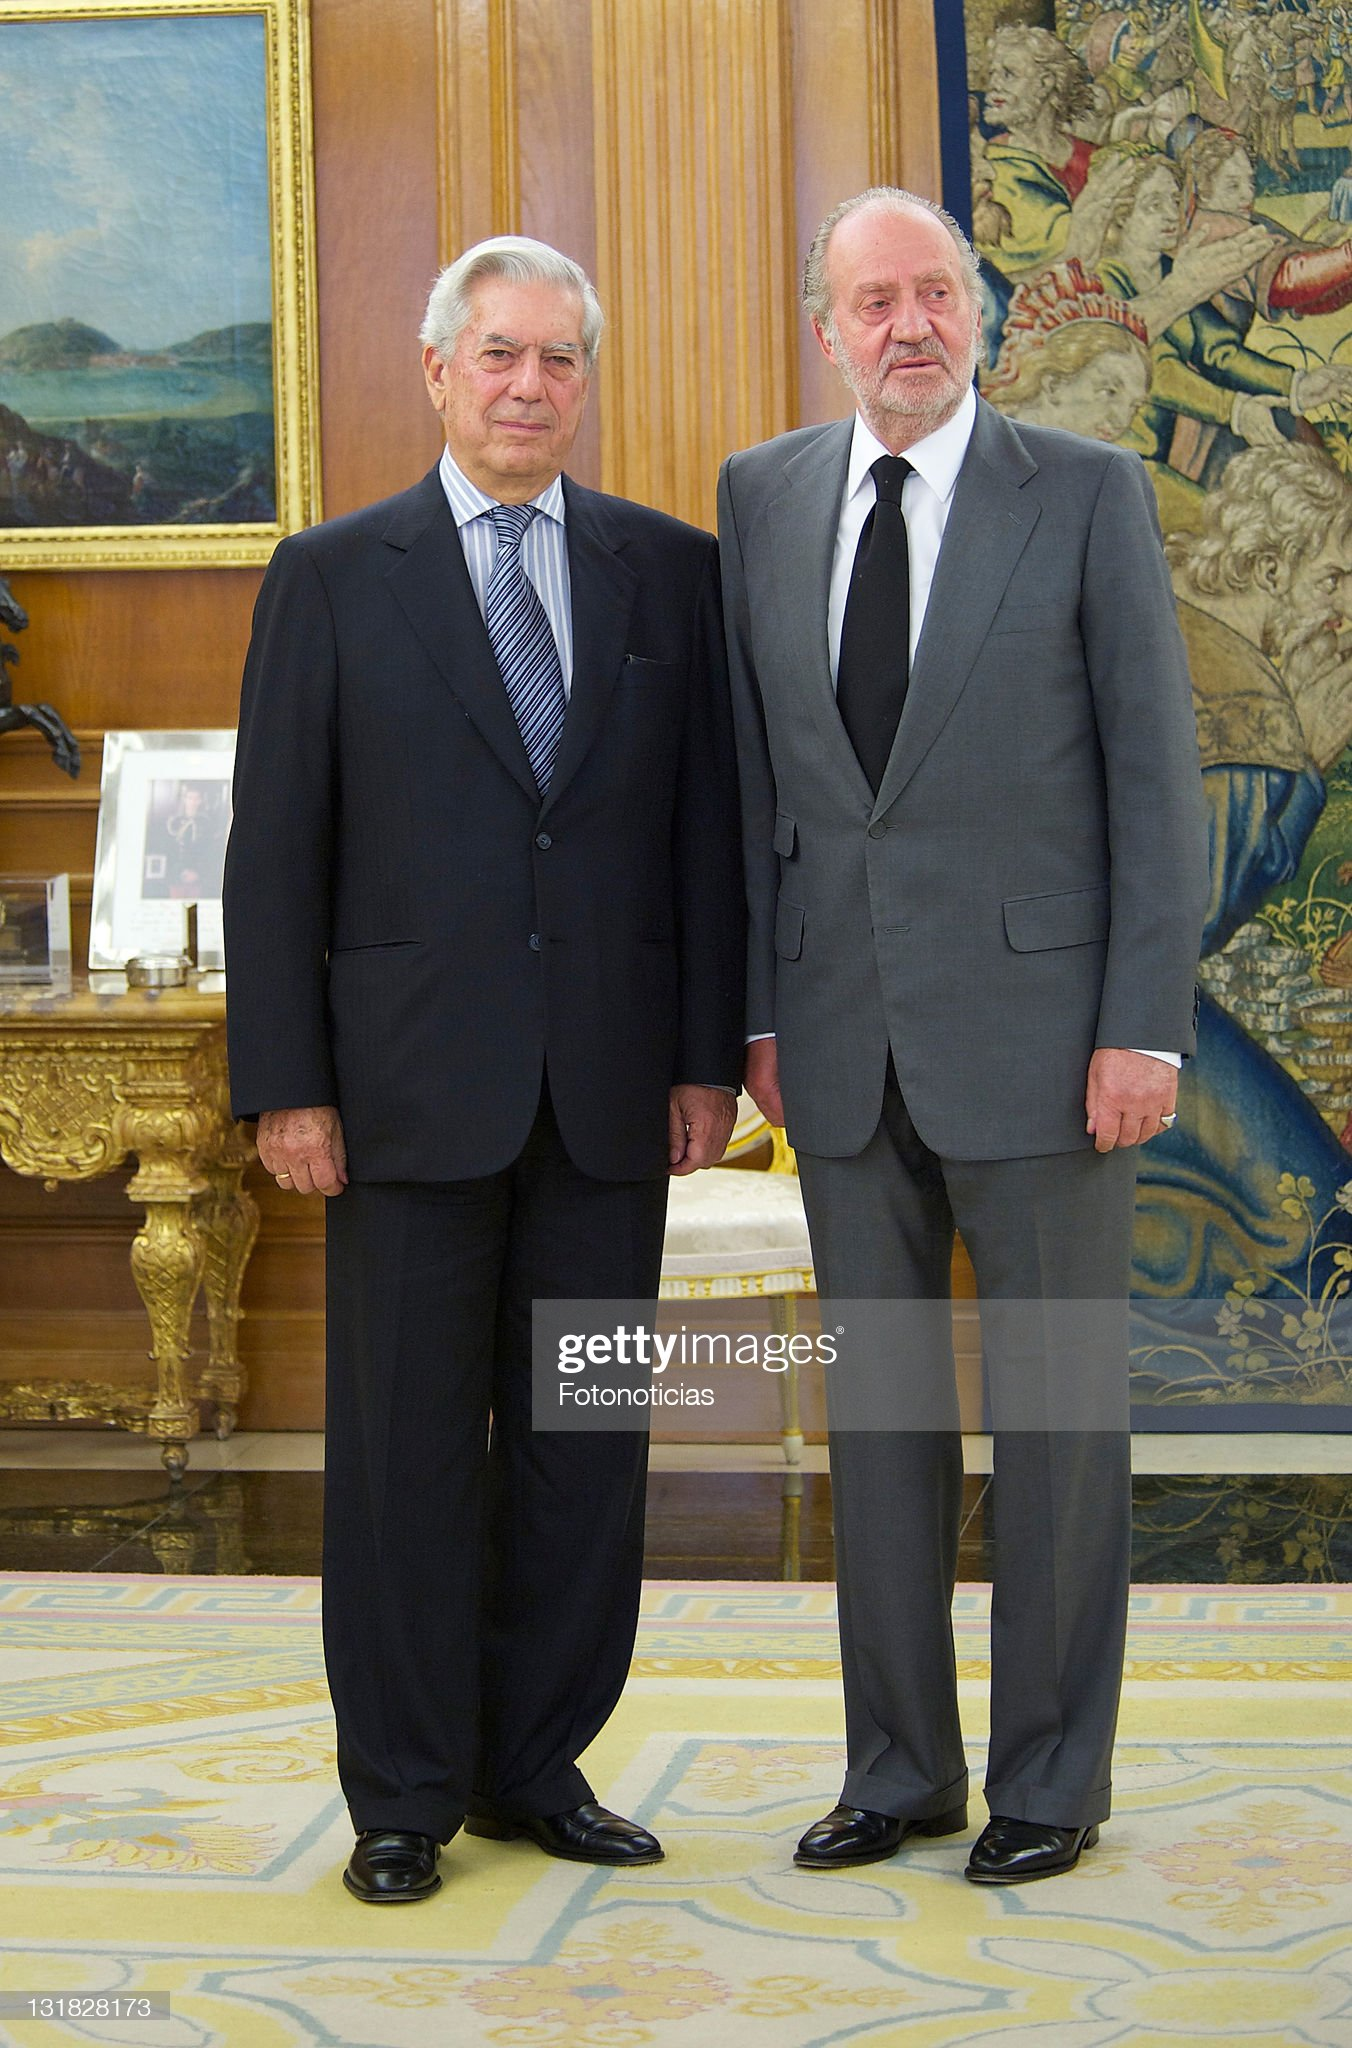 ¿Cuánto mide Mario Vargas Llosa? - Altura King-juan-carlos-of-spain-receives-writer-and-nobel-prize-winner-picture-id131828173?s=2048x2048